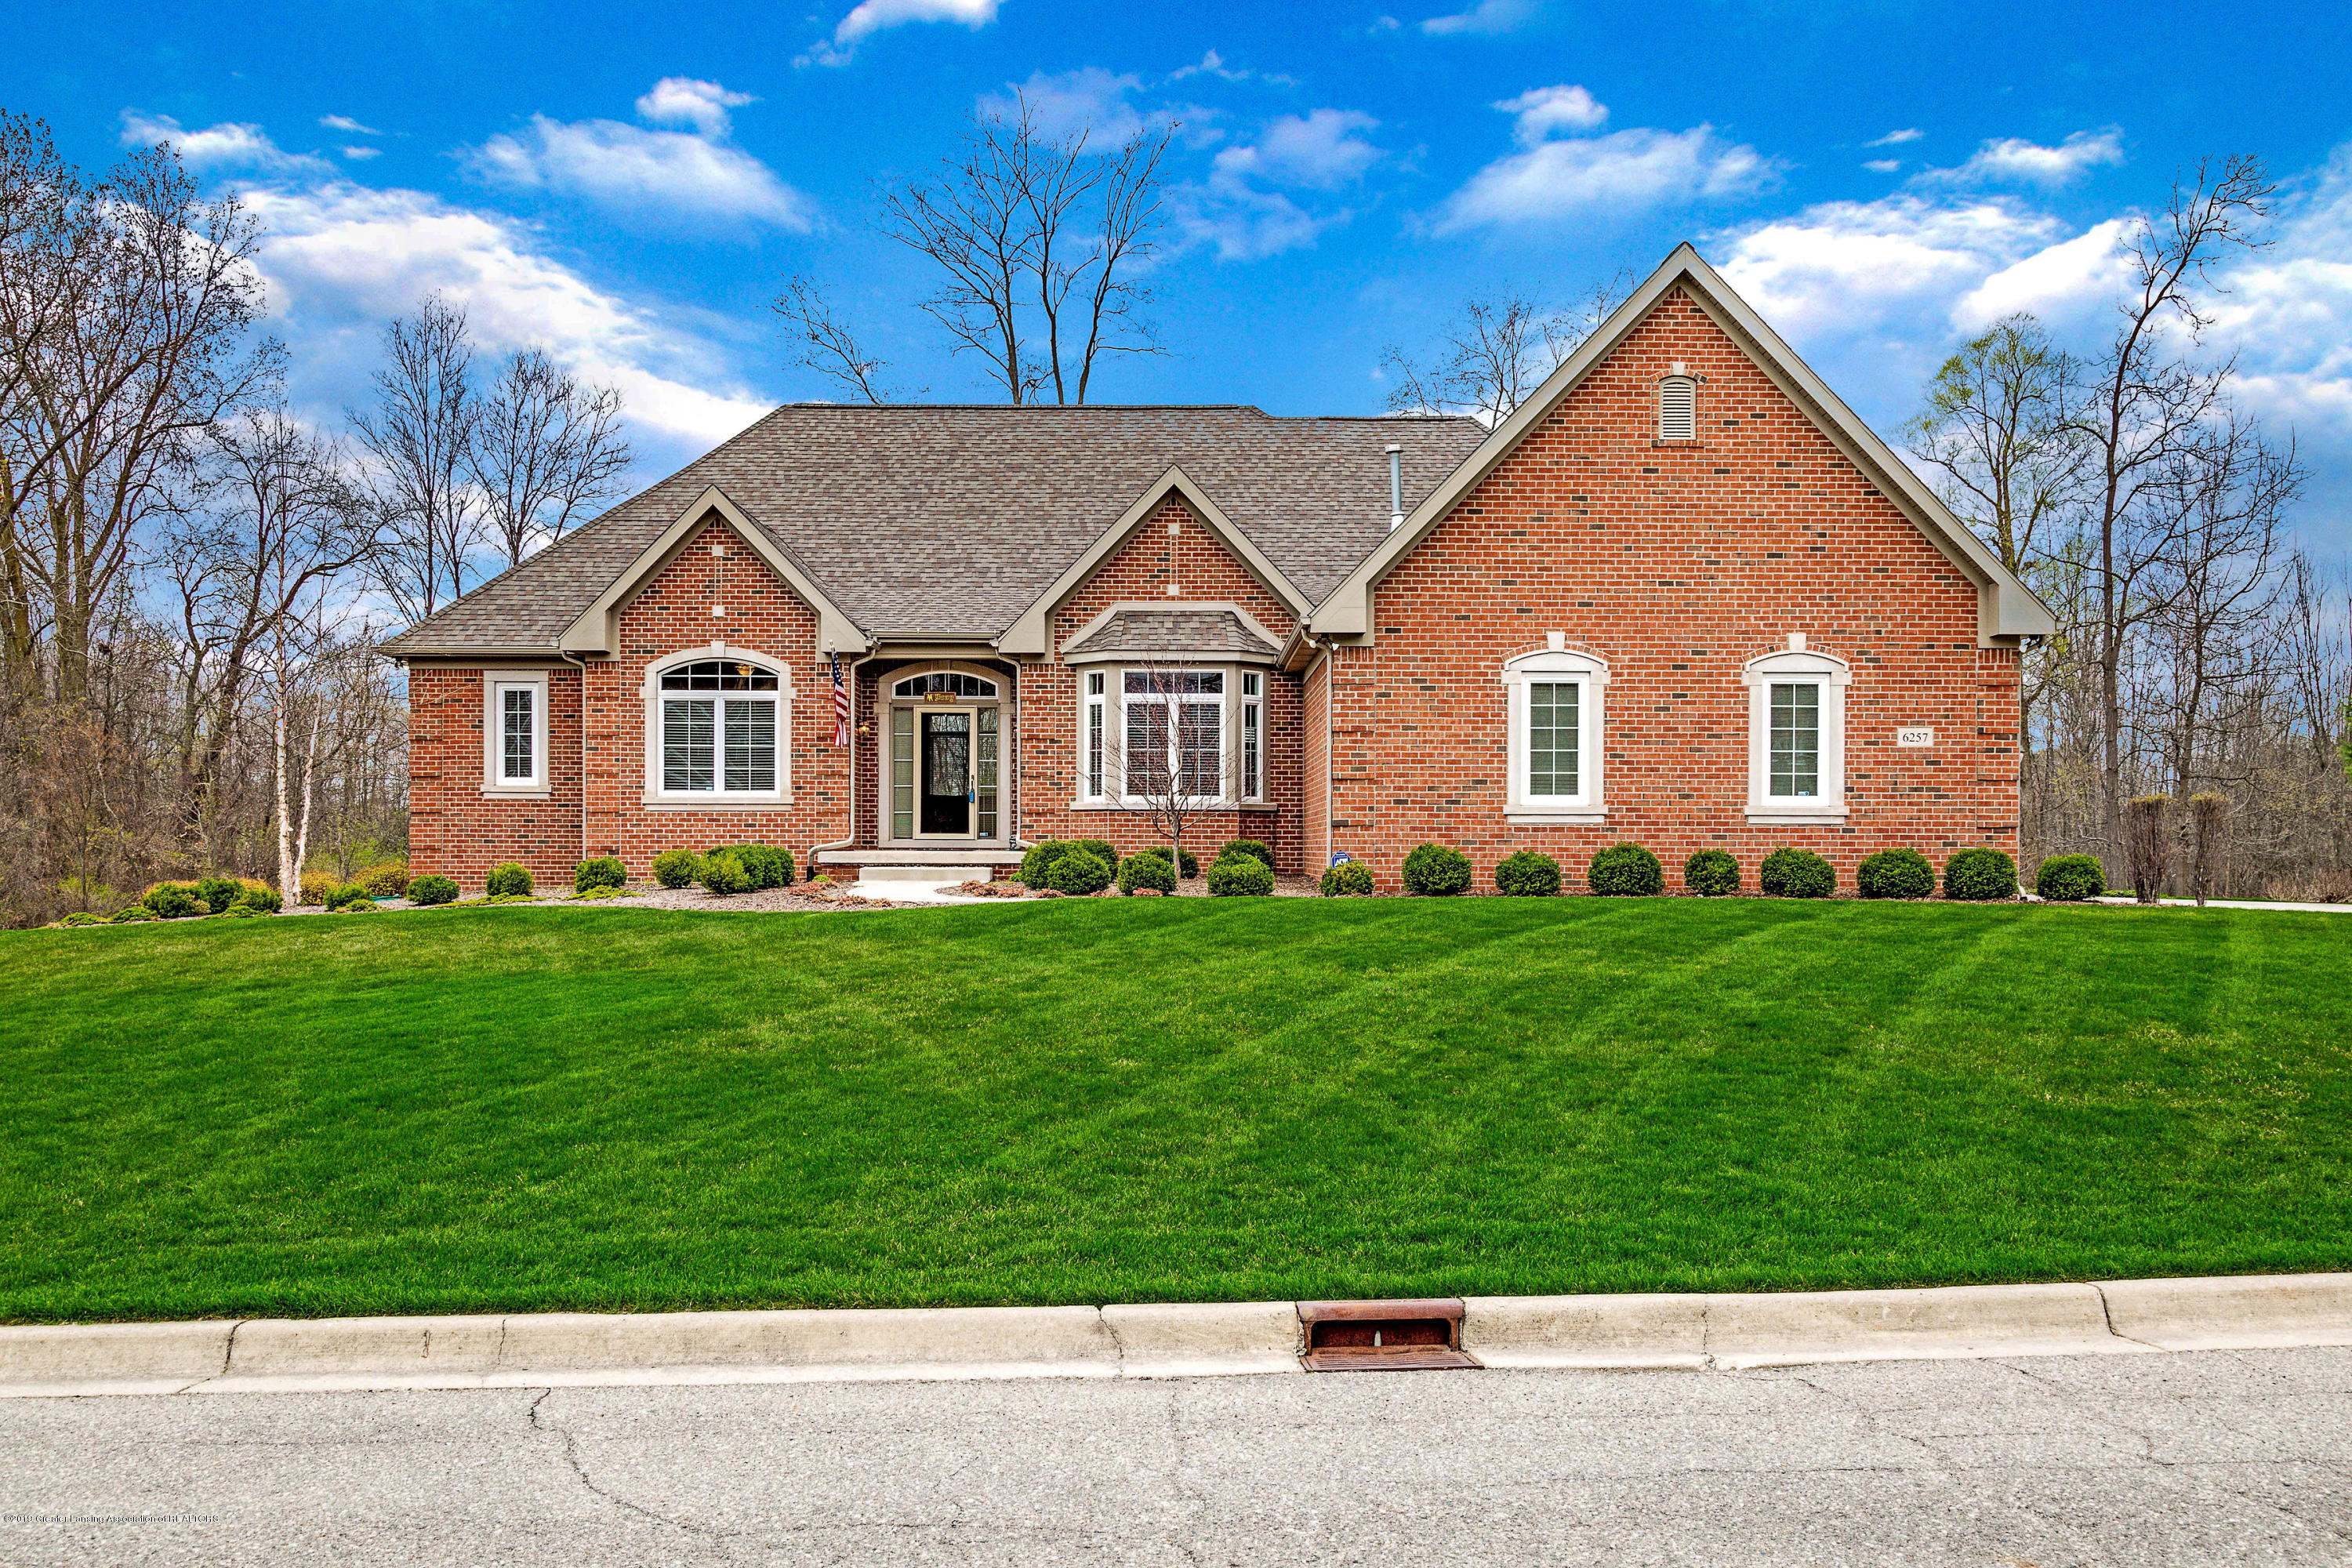 6257 Mereford Ct - 20190426-E3 - 56